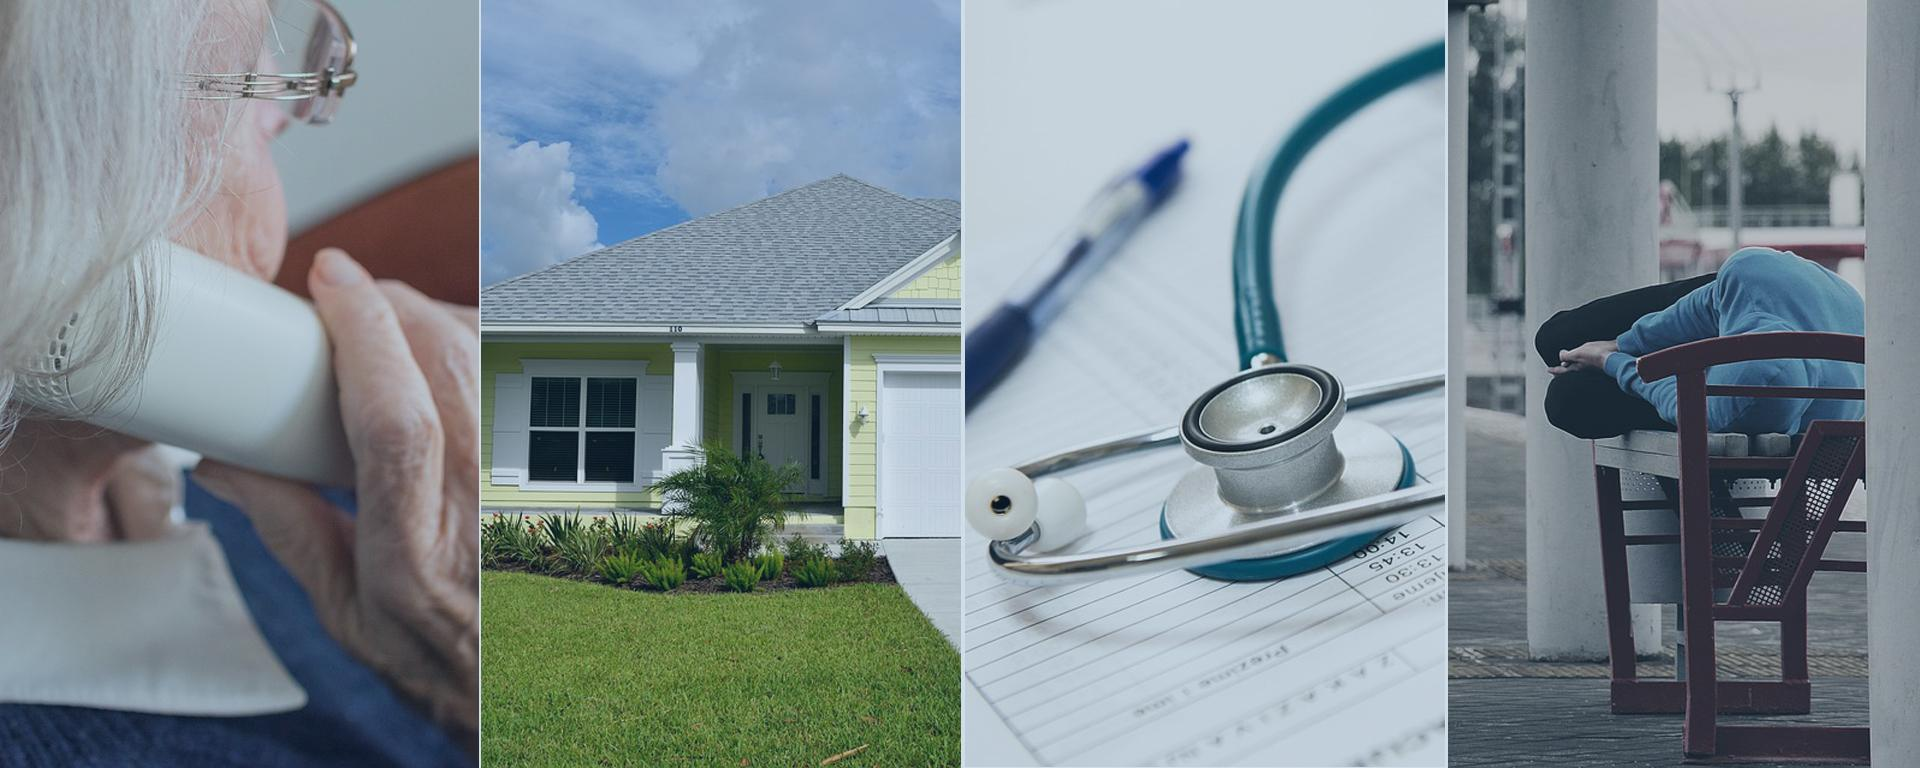 health, medical, housing, and homeless assistance